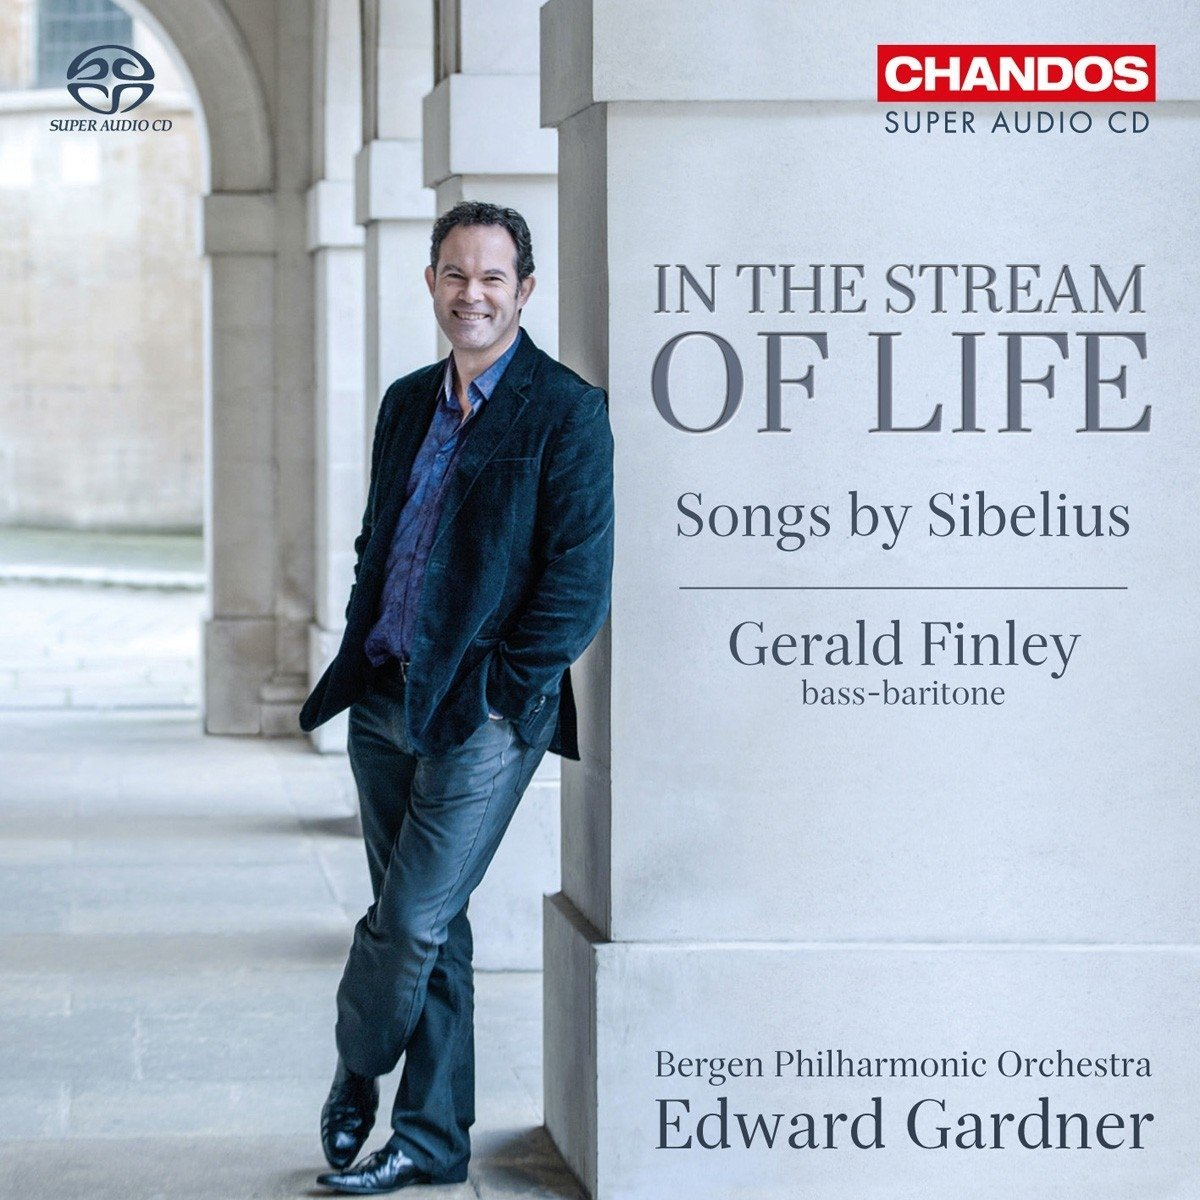 In the Stream of Life - Songs By Sibelius, Gerald Finley